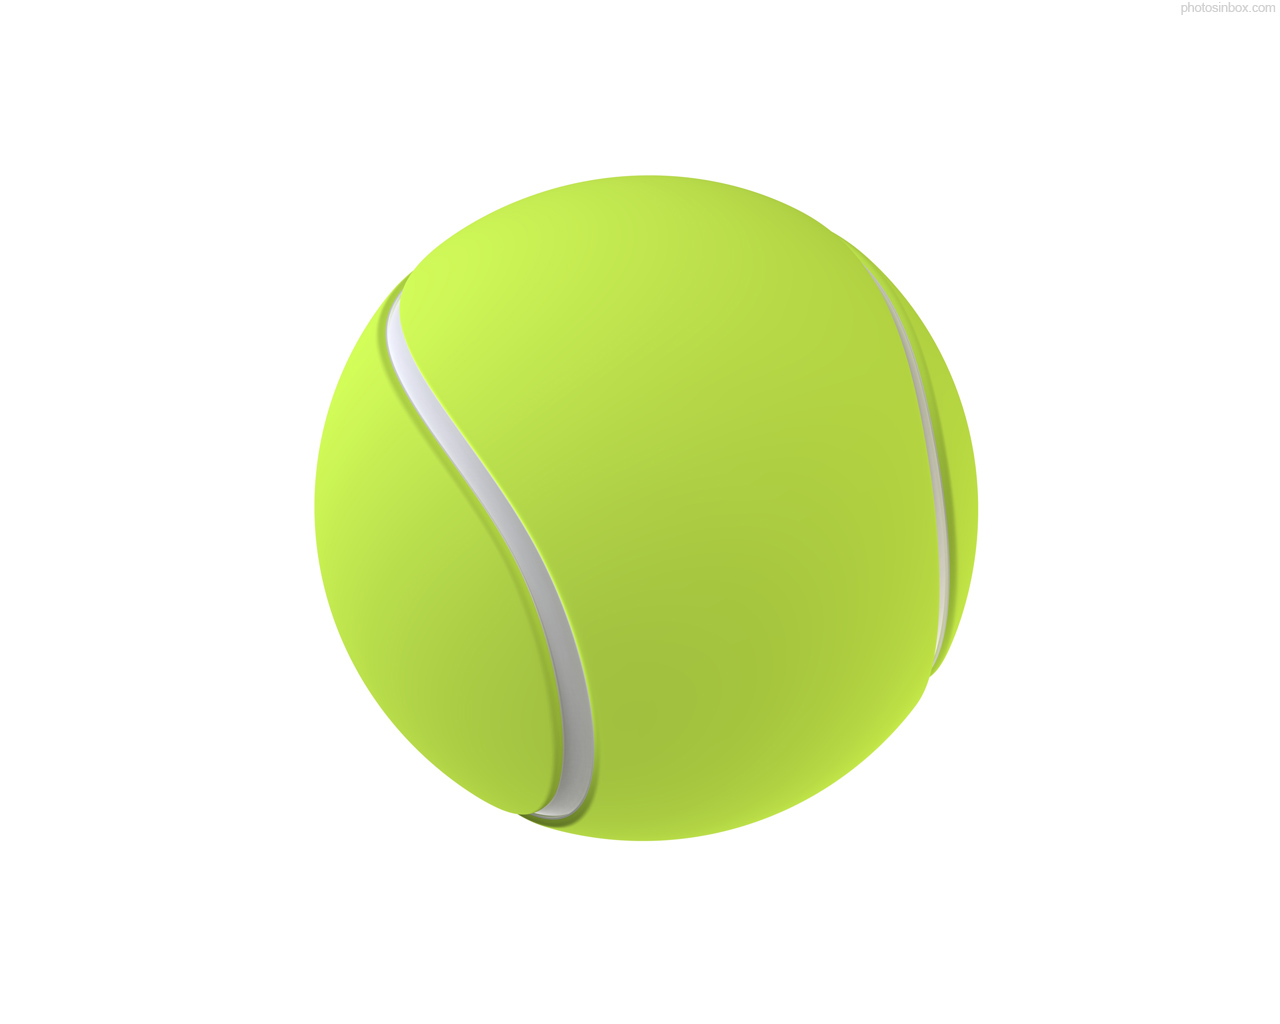 Tennis ball picture clipart